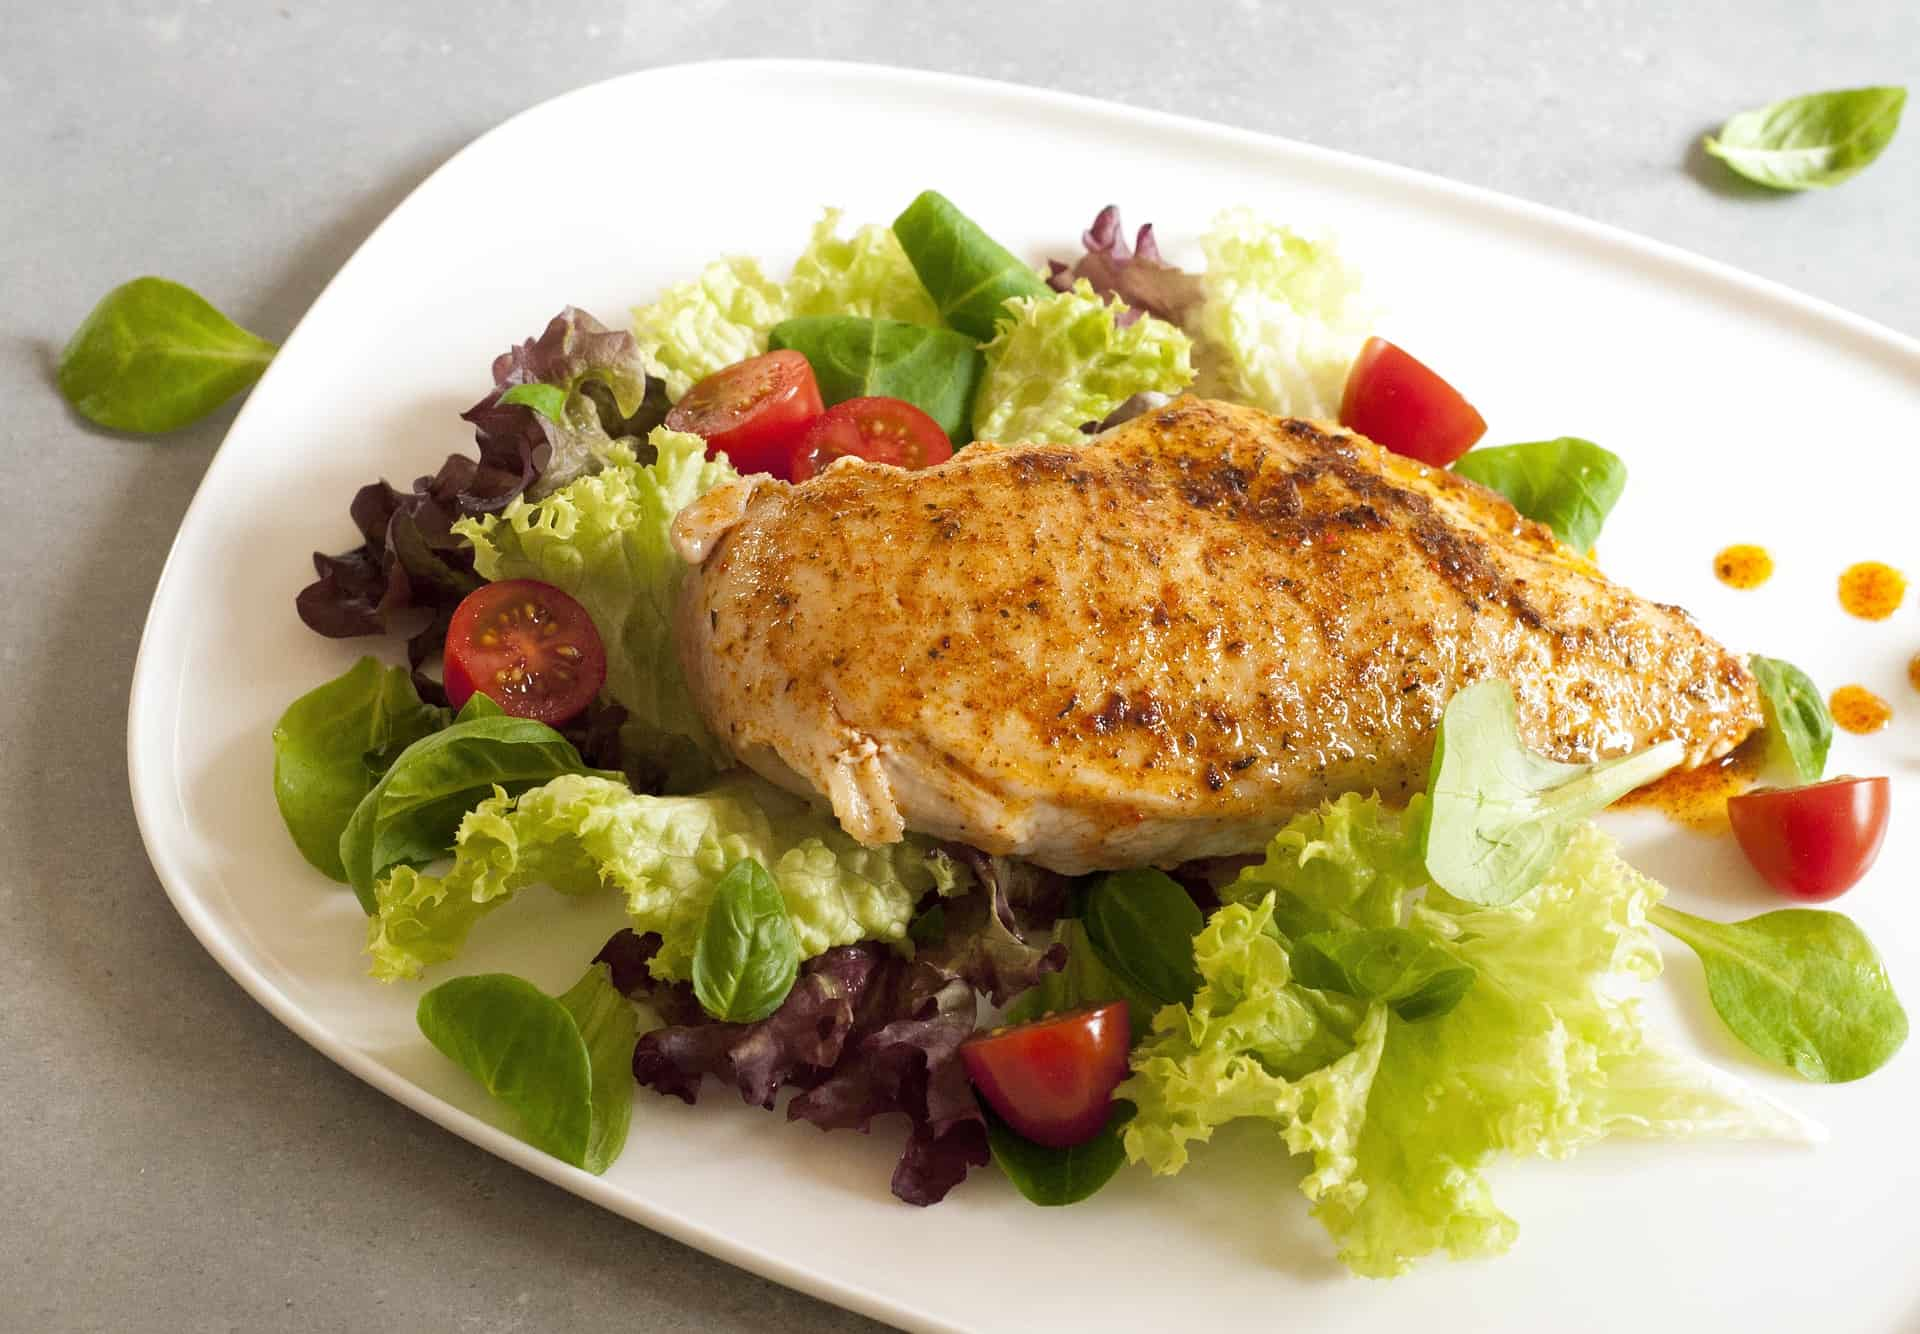 Here Are The Top Benefits Of Eating Chicken